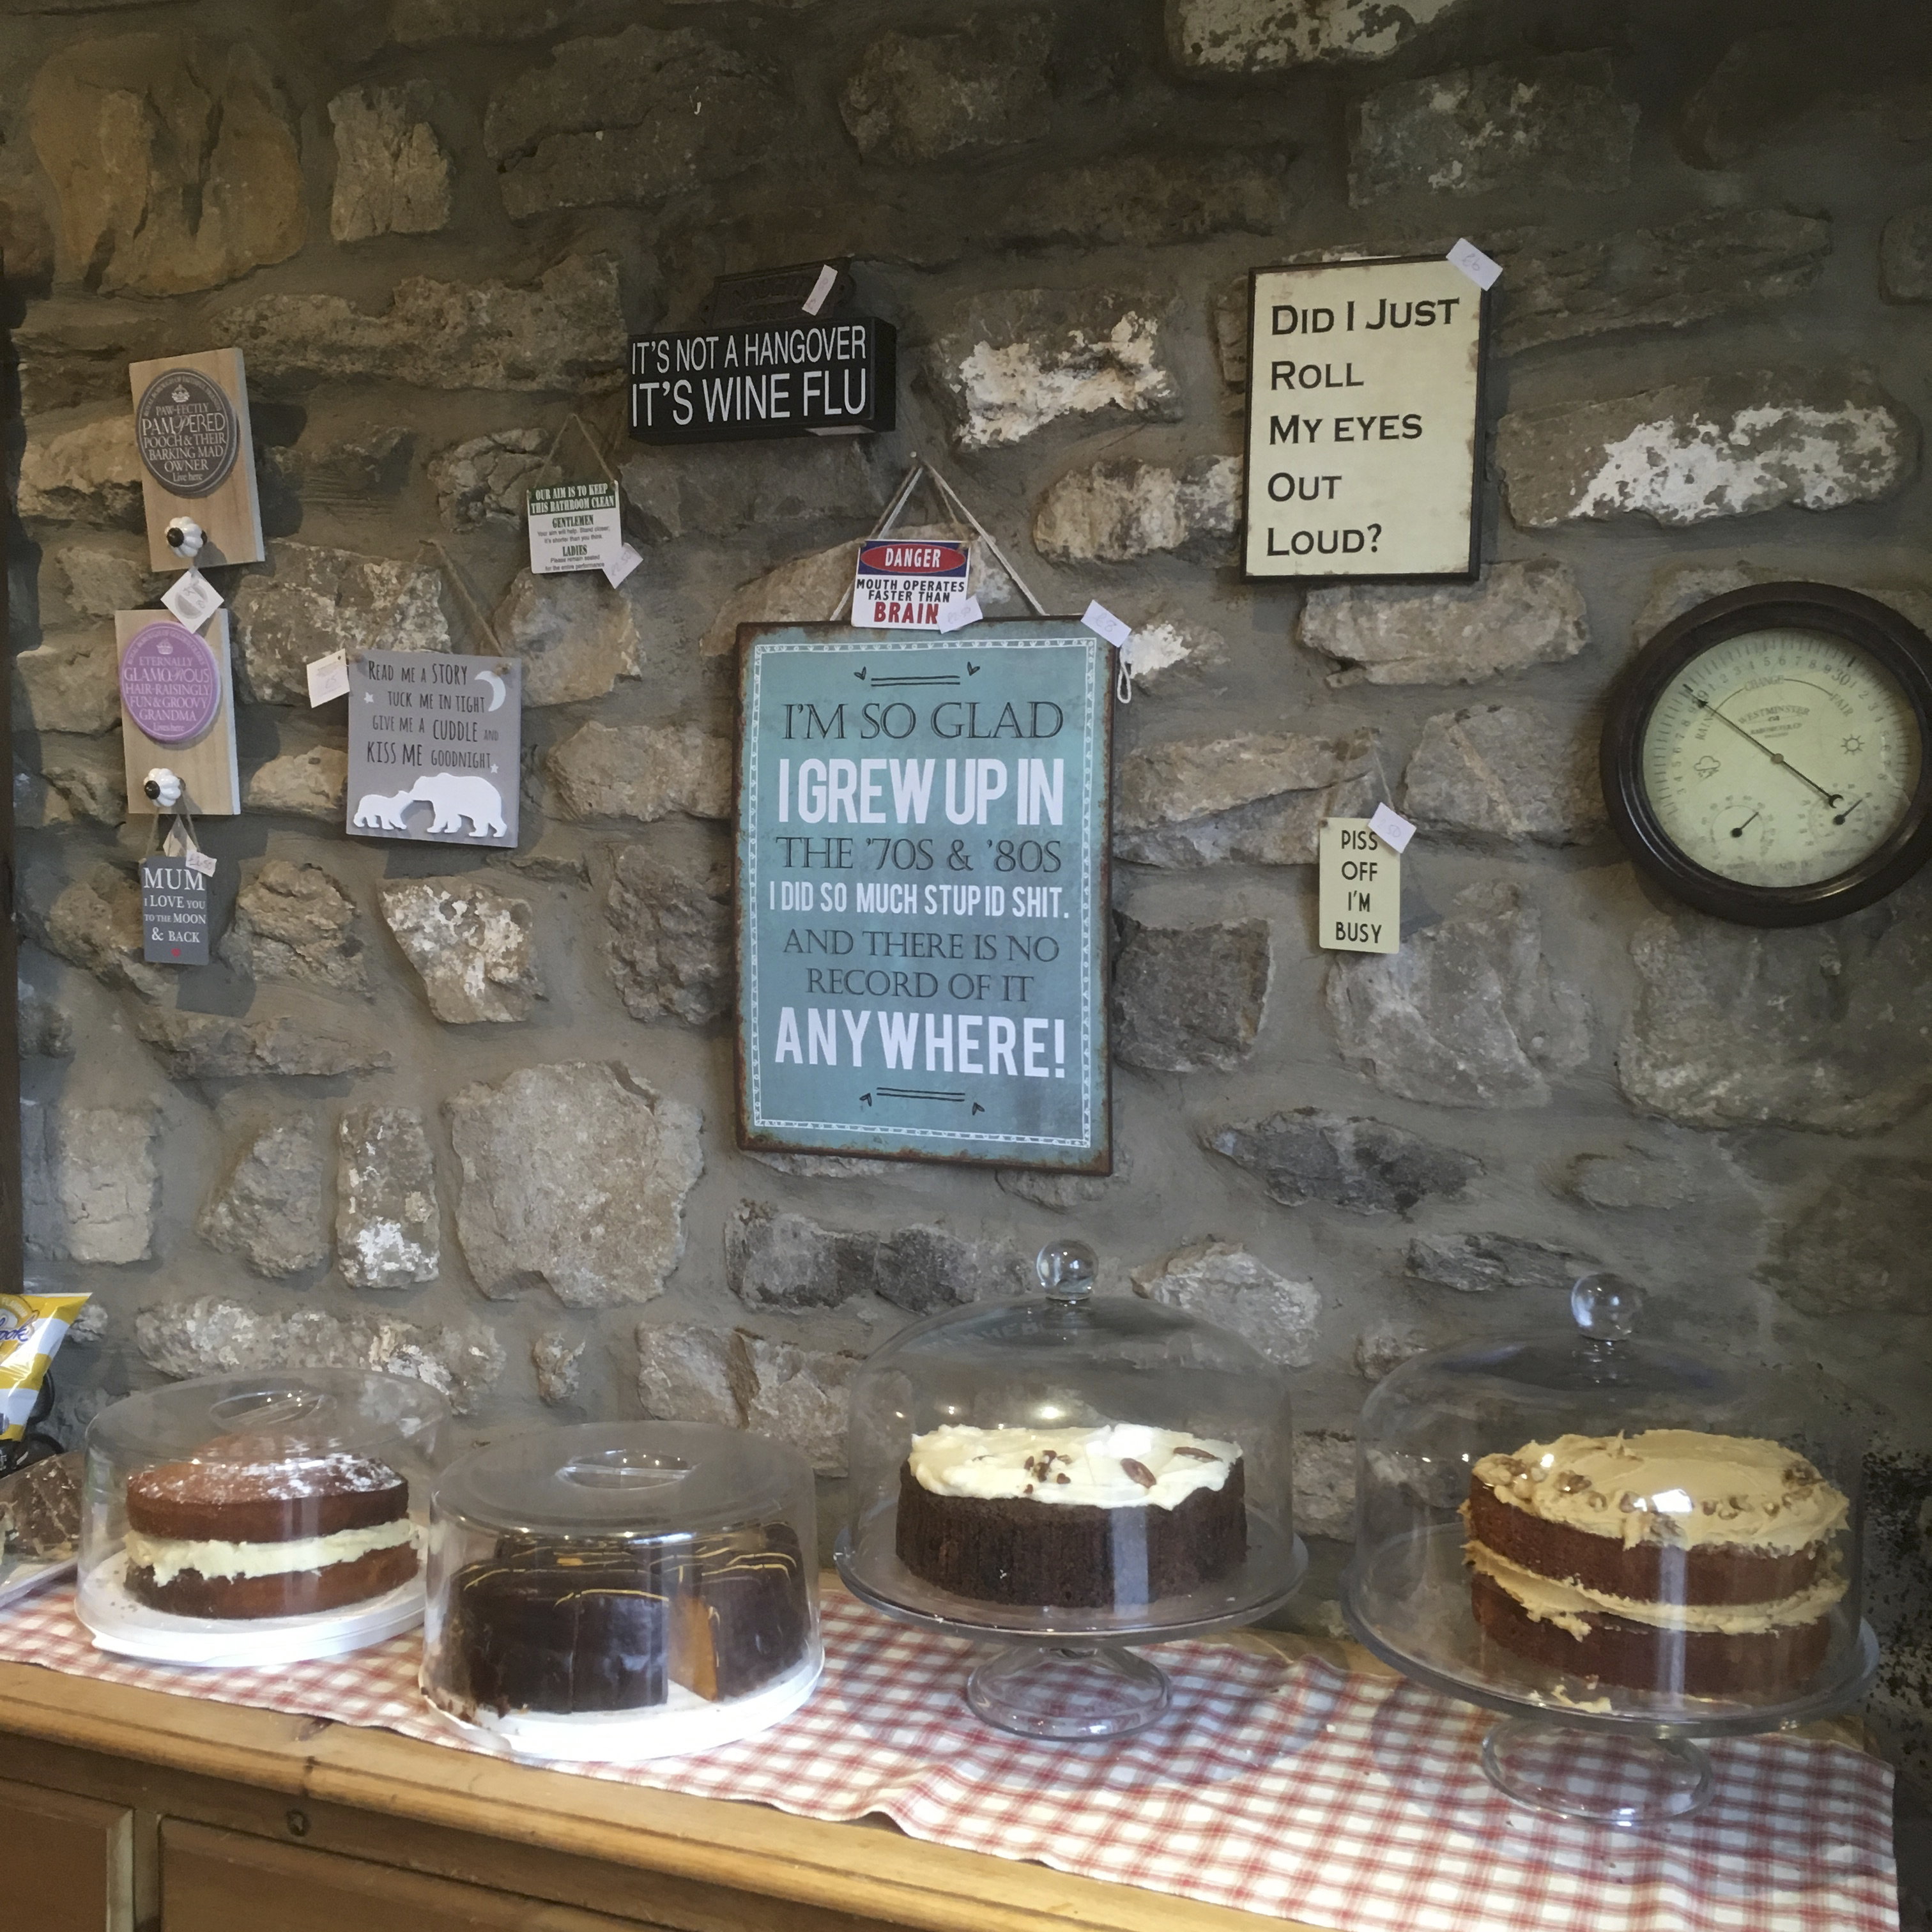 Cakes and signs for sale